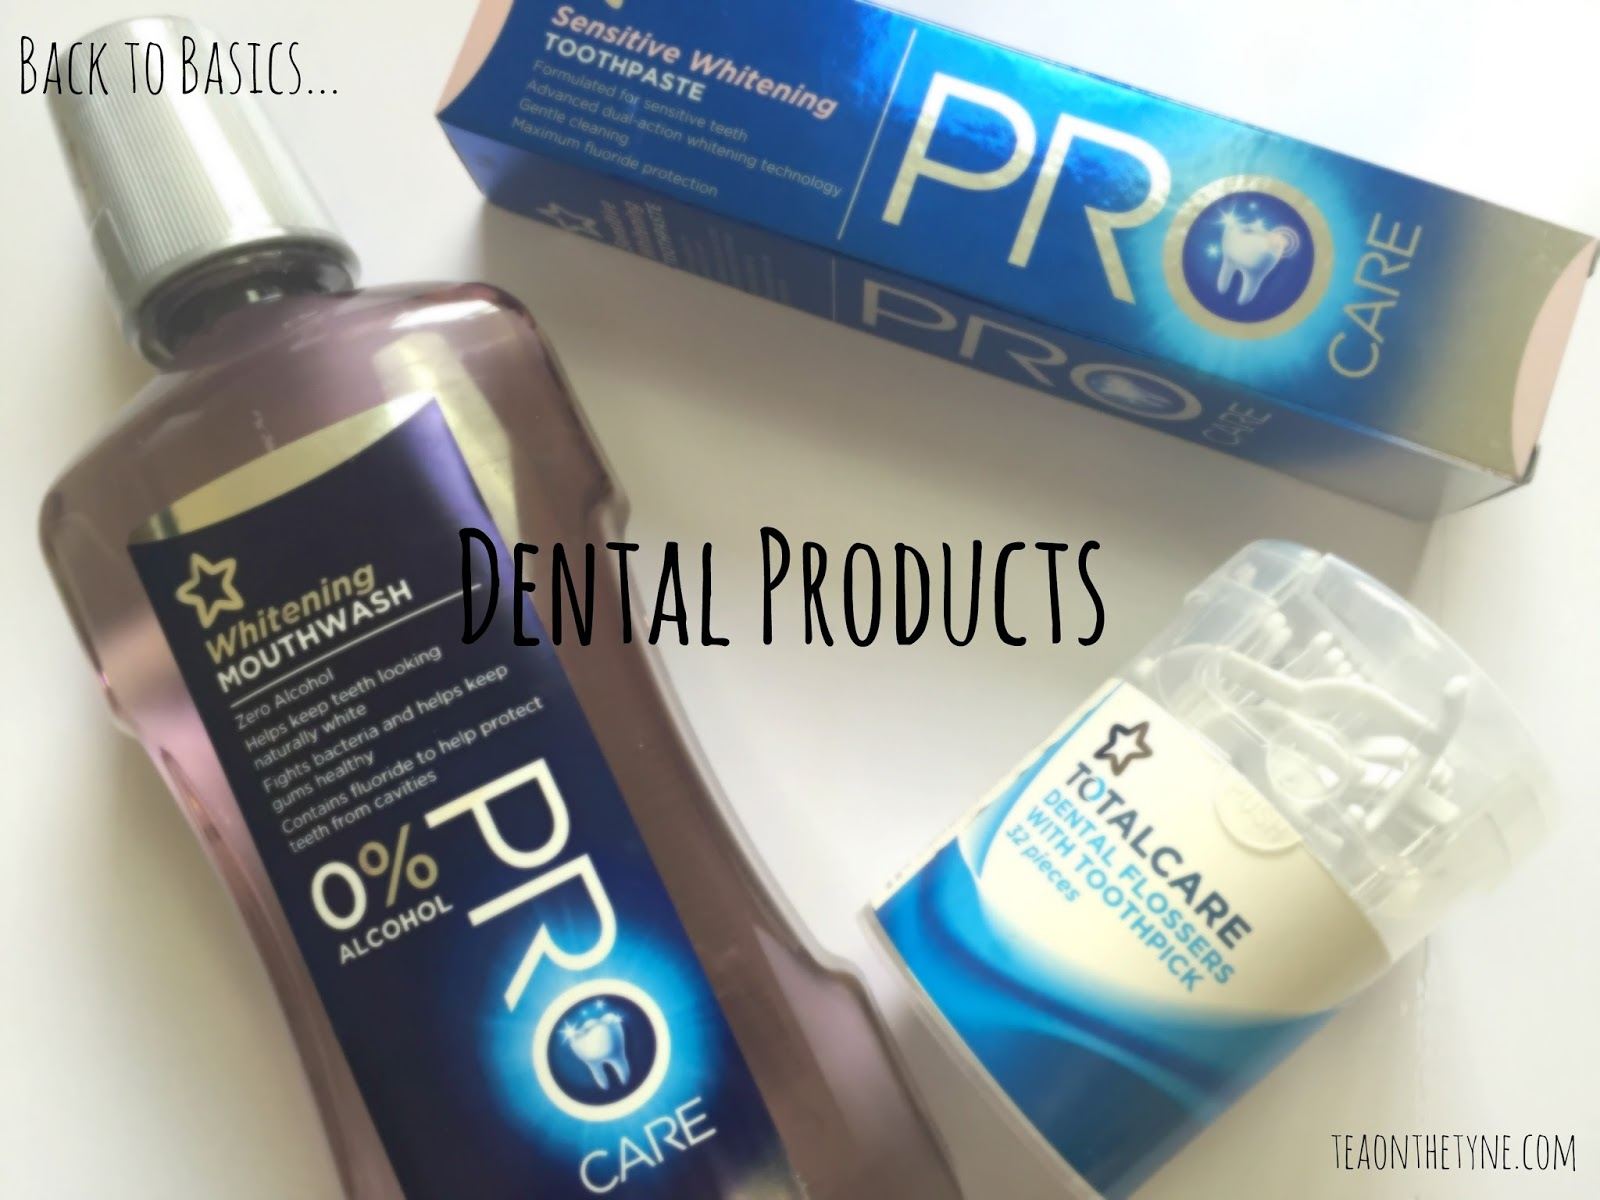 Cruelty Free and Vegan Dental Products Toothpaste Mouthwash Floss